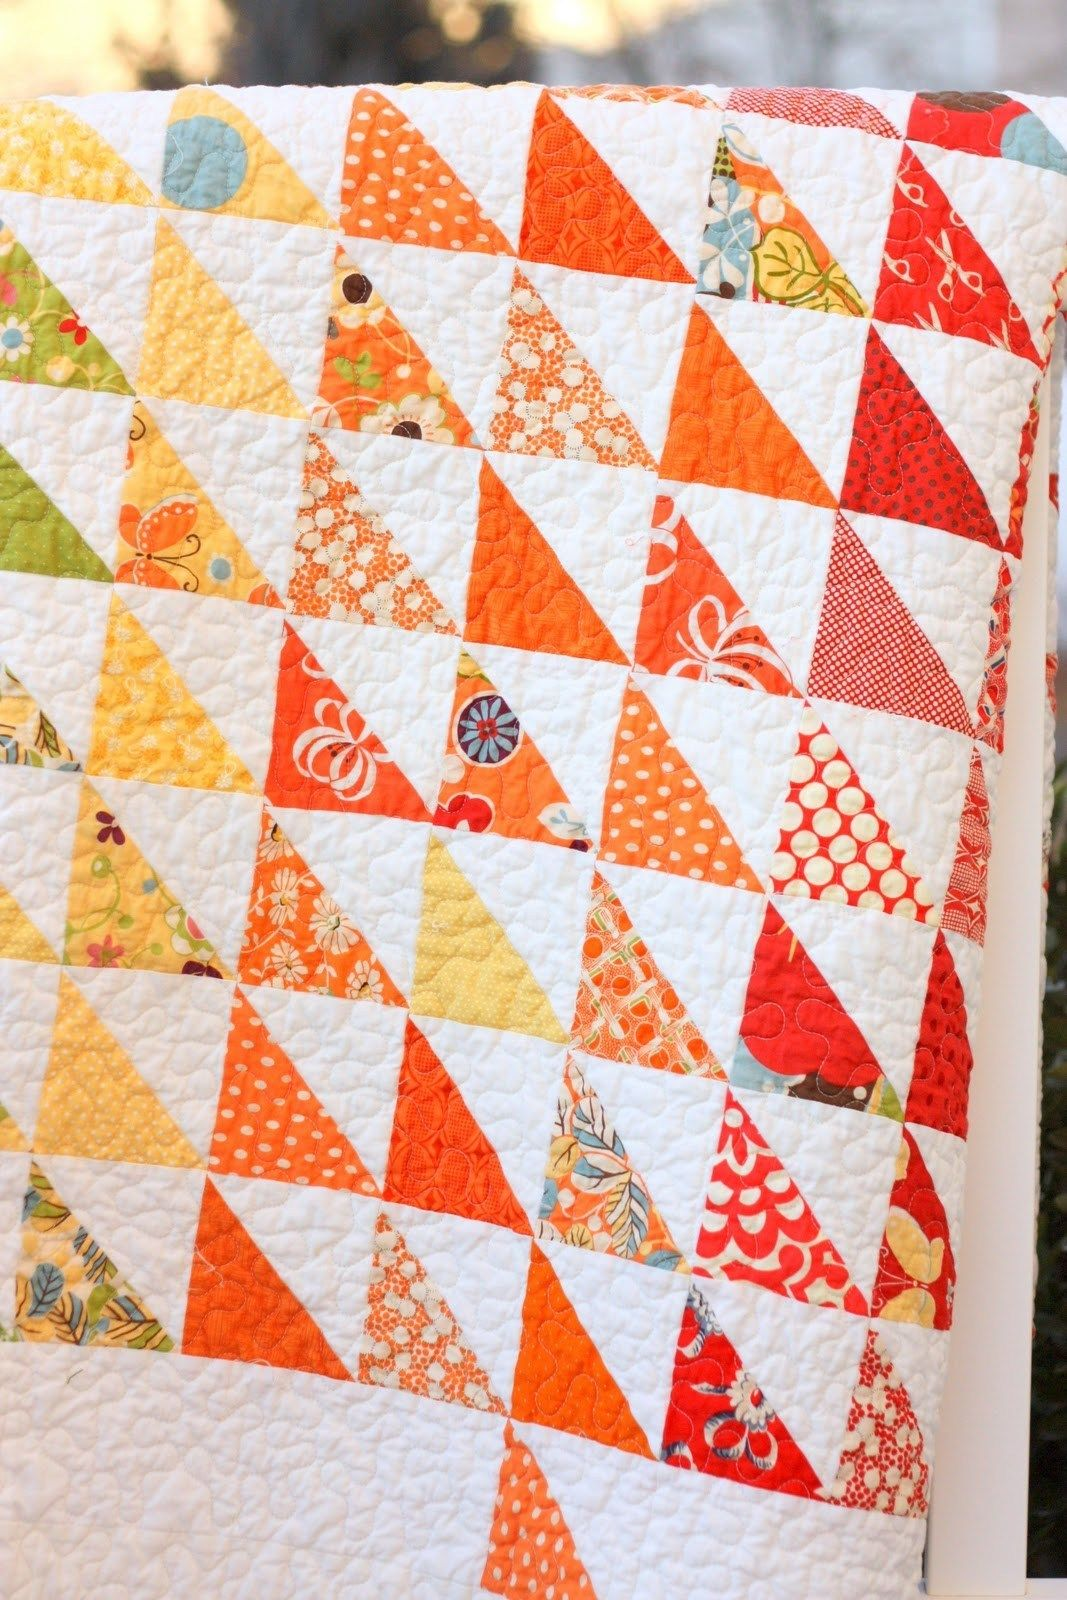 25 Best Charm Square Quilts Projects Diary Of A Quilter A Quilt Blog Half Square Triangle Quilts Pattern Charm Square Quilt Triangle Quilt Pattern